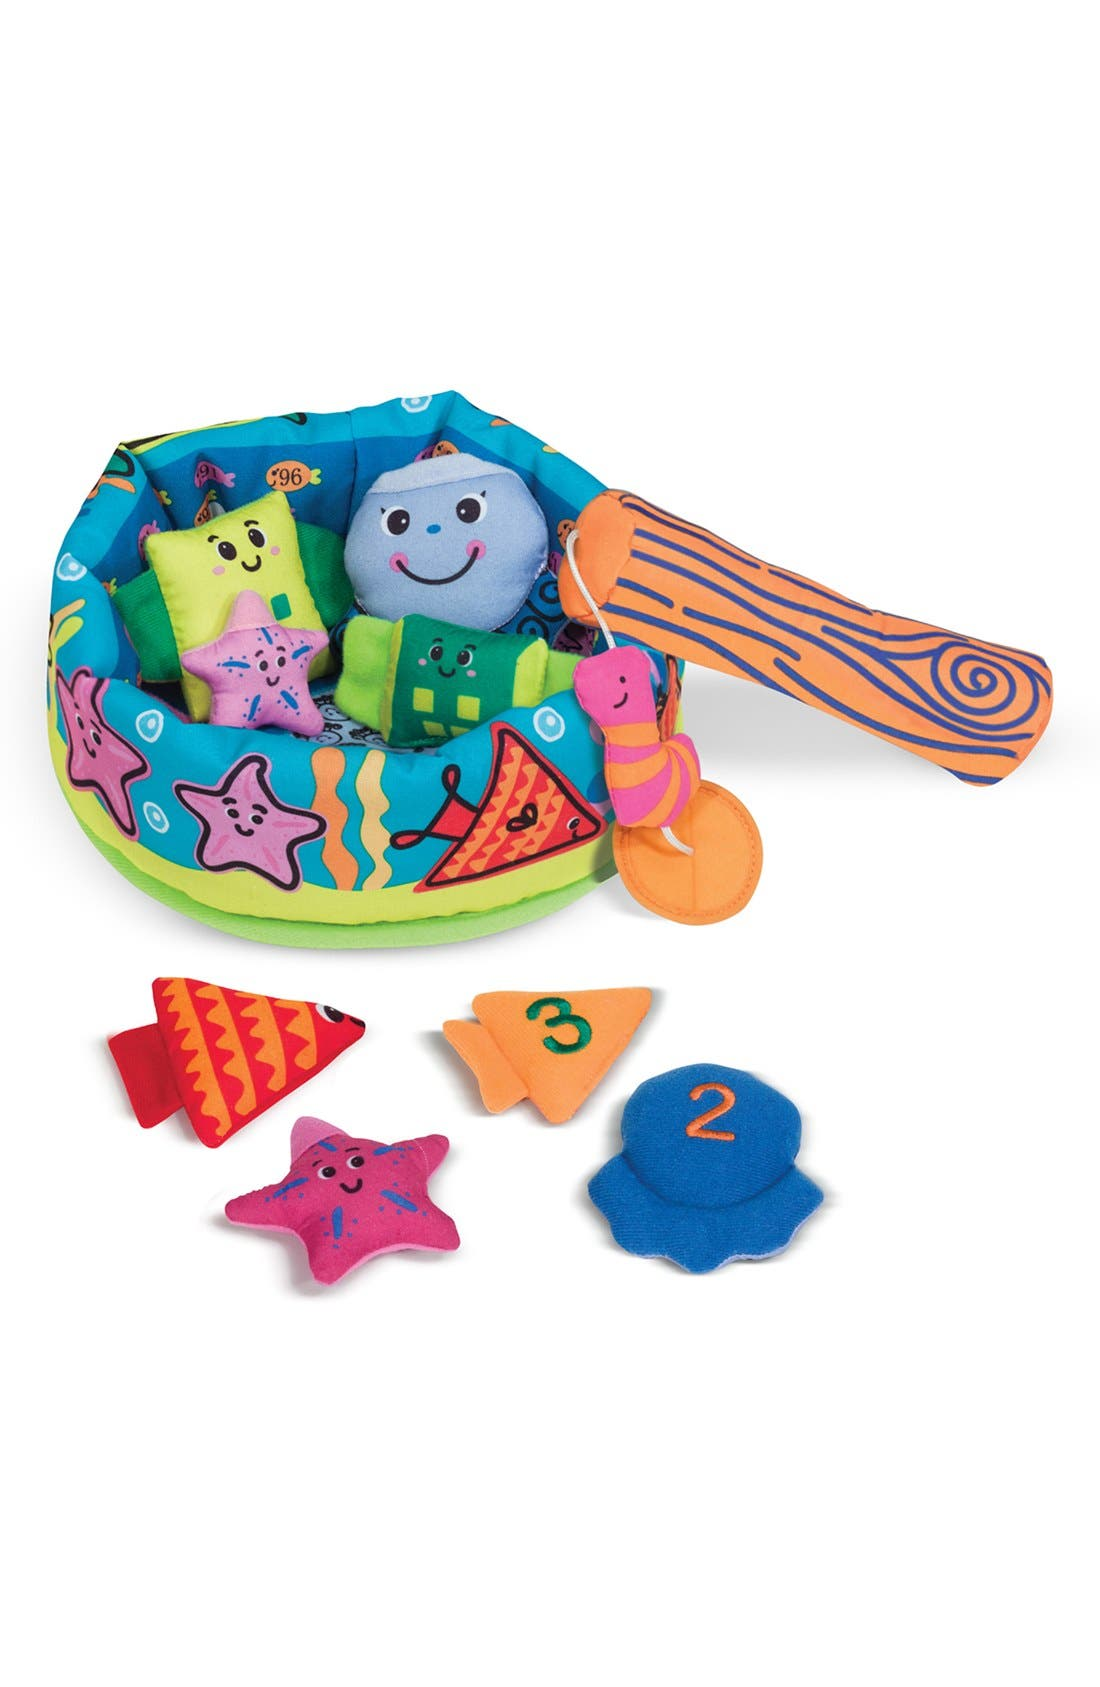 Alternate Image 1 Selected - Melissa & Doug 'Fish & Count' Game